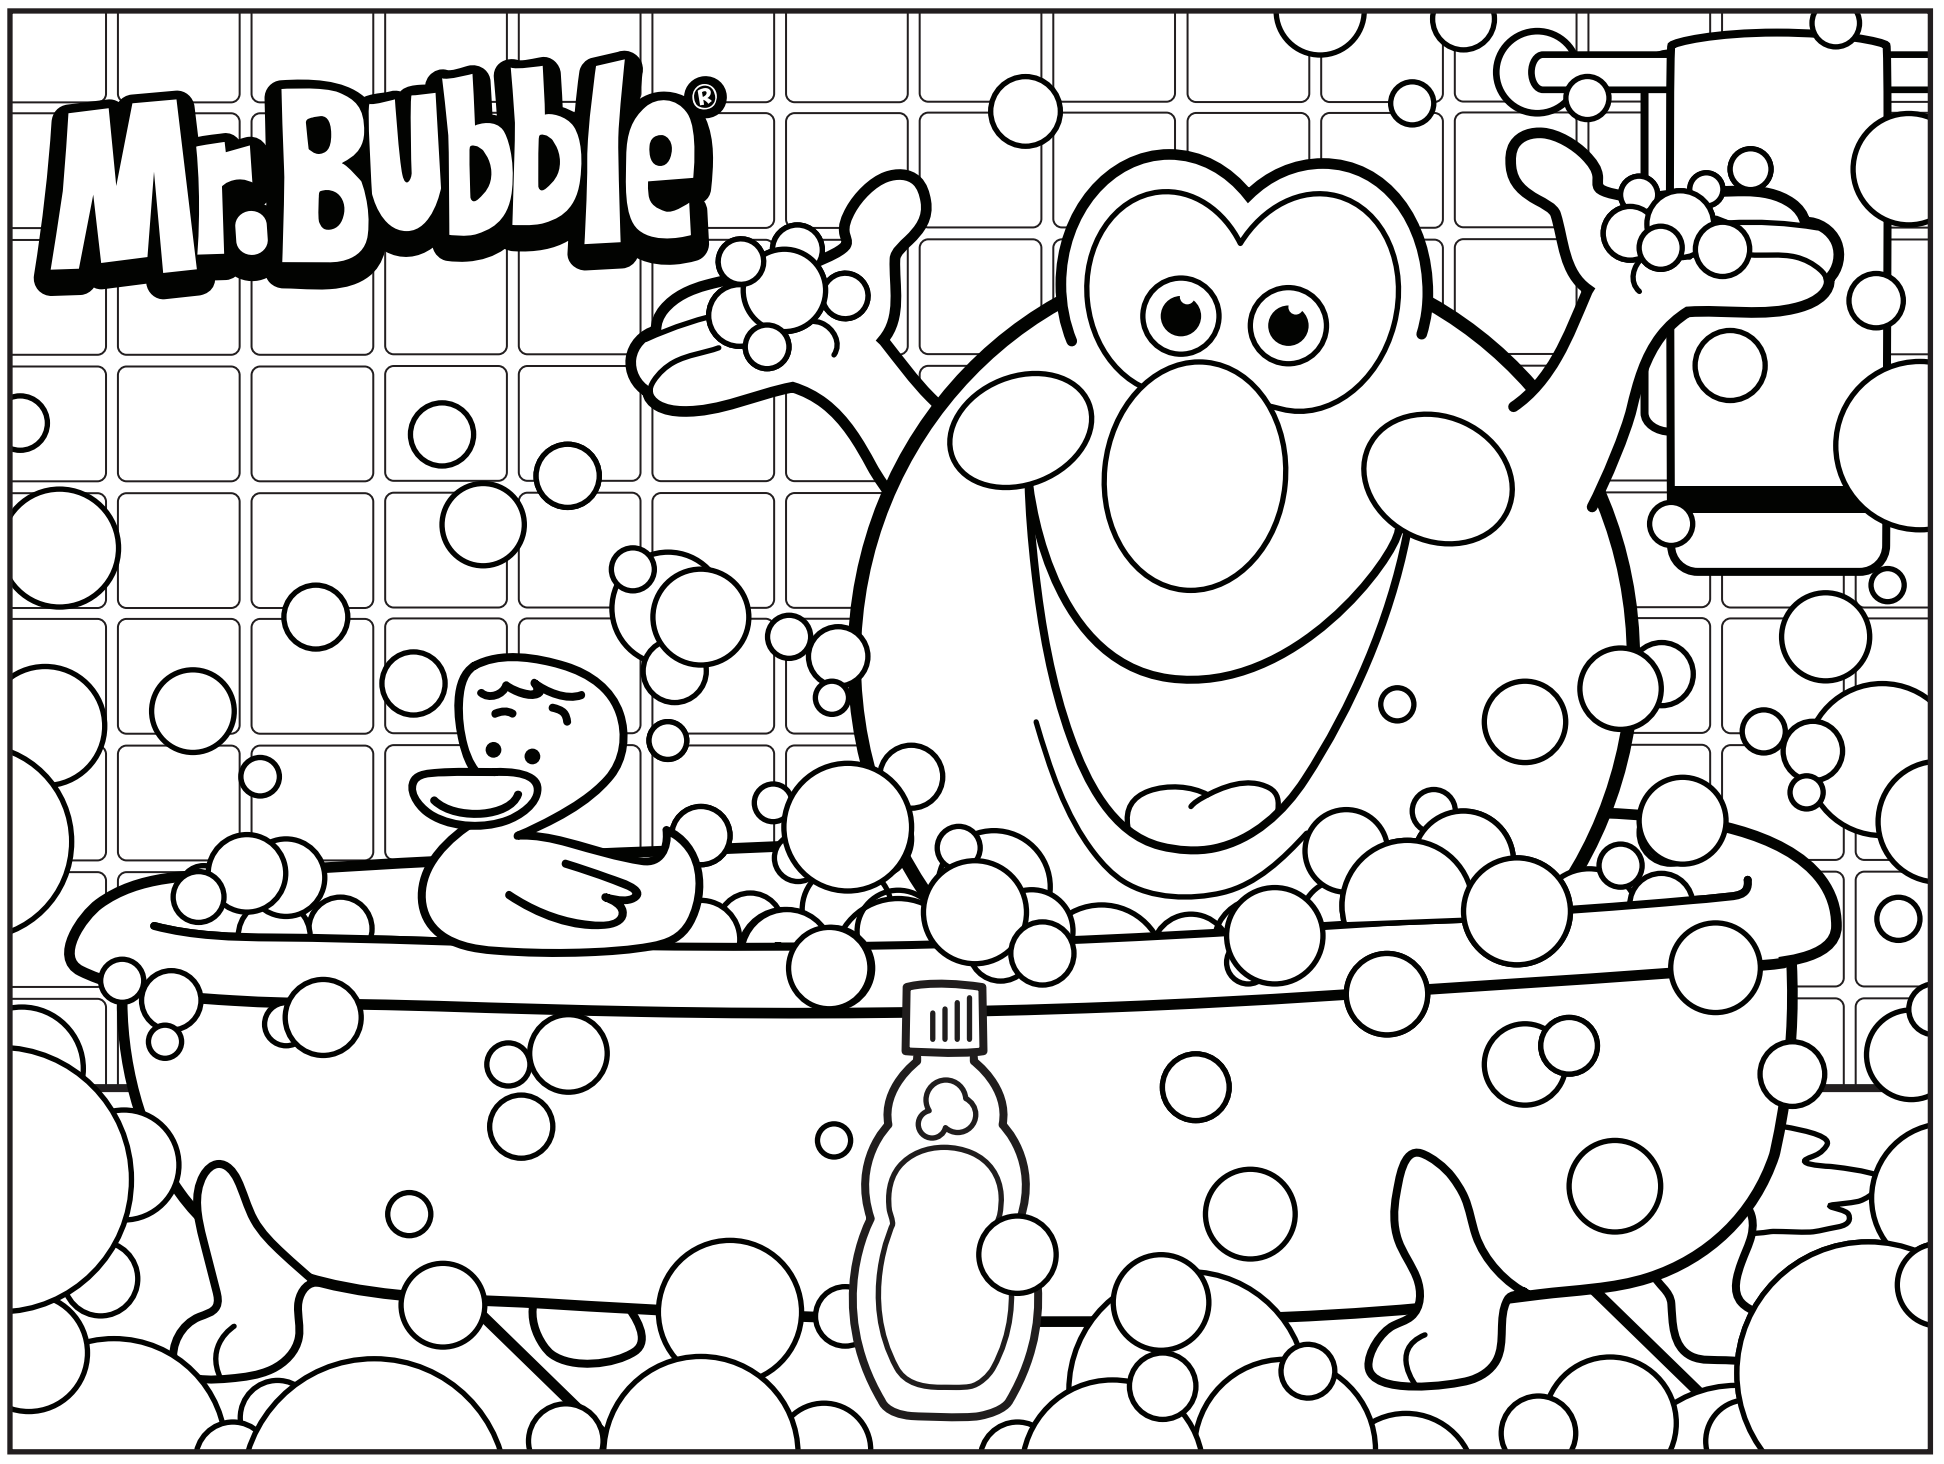 printable coloring pages mr bubble coloring page bath time - Colouring Pages Printables